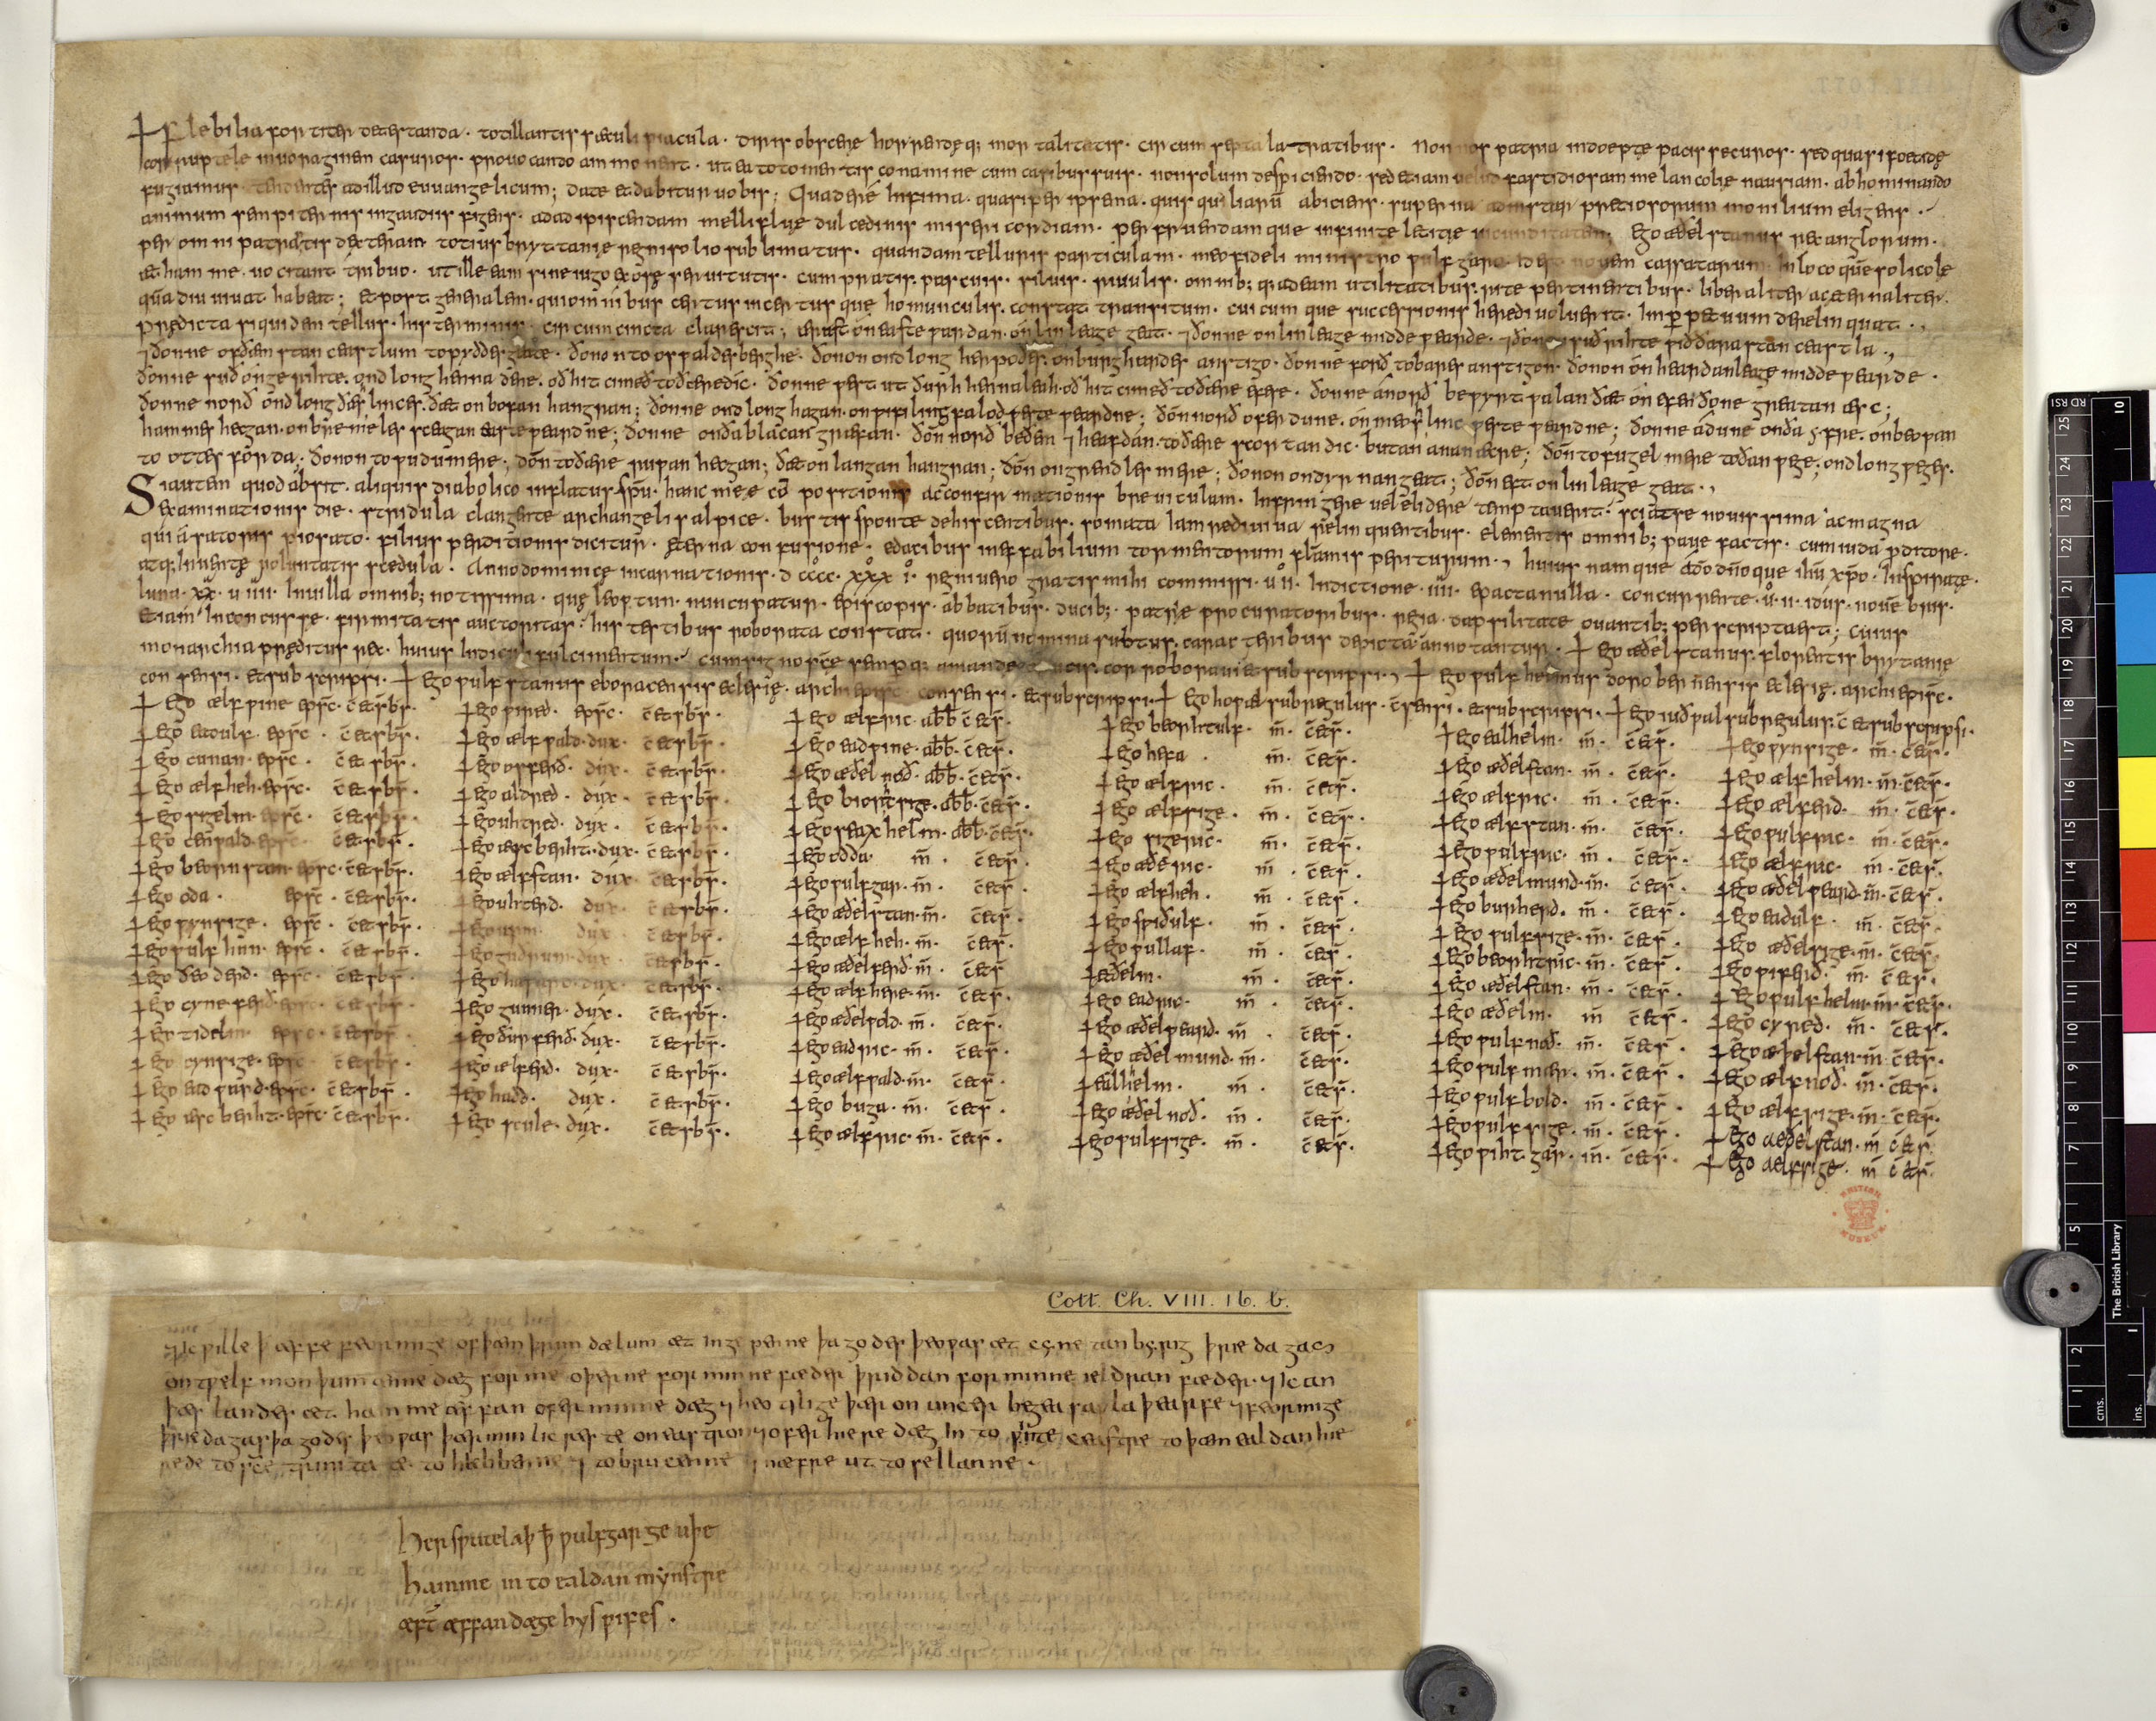 Charter of King Aethelstan